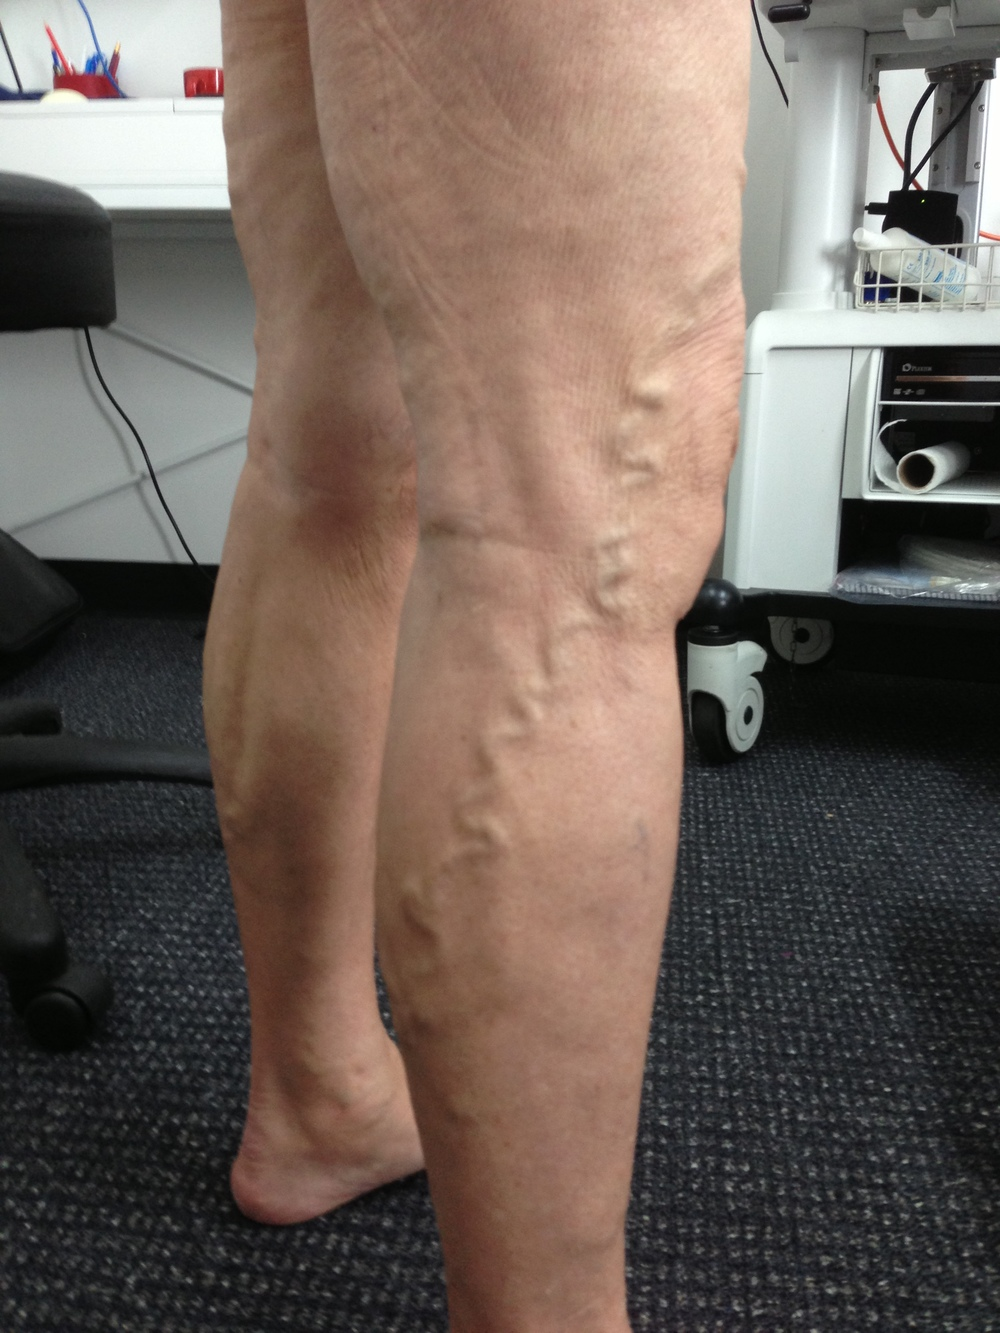 Patient presented with Varicose Veins. Female, 64 years.